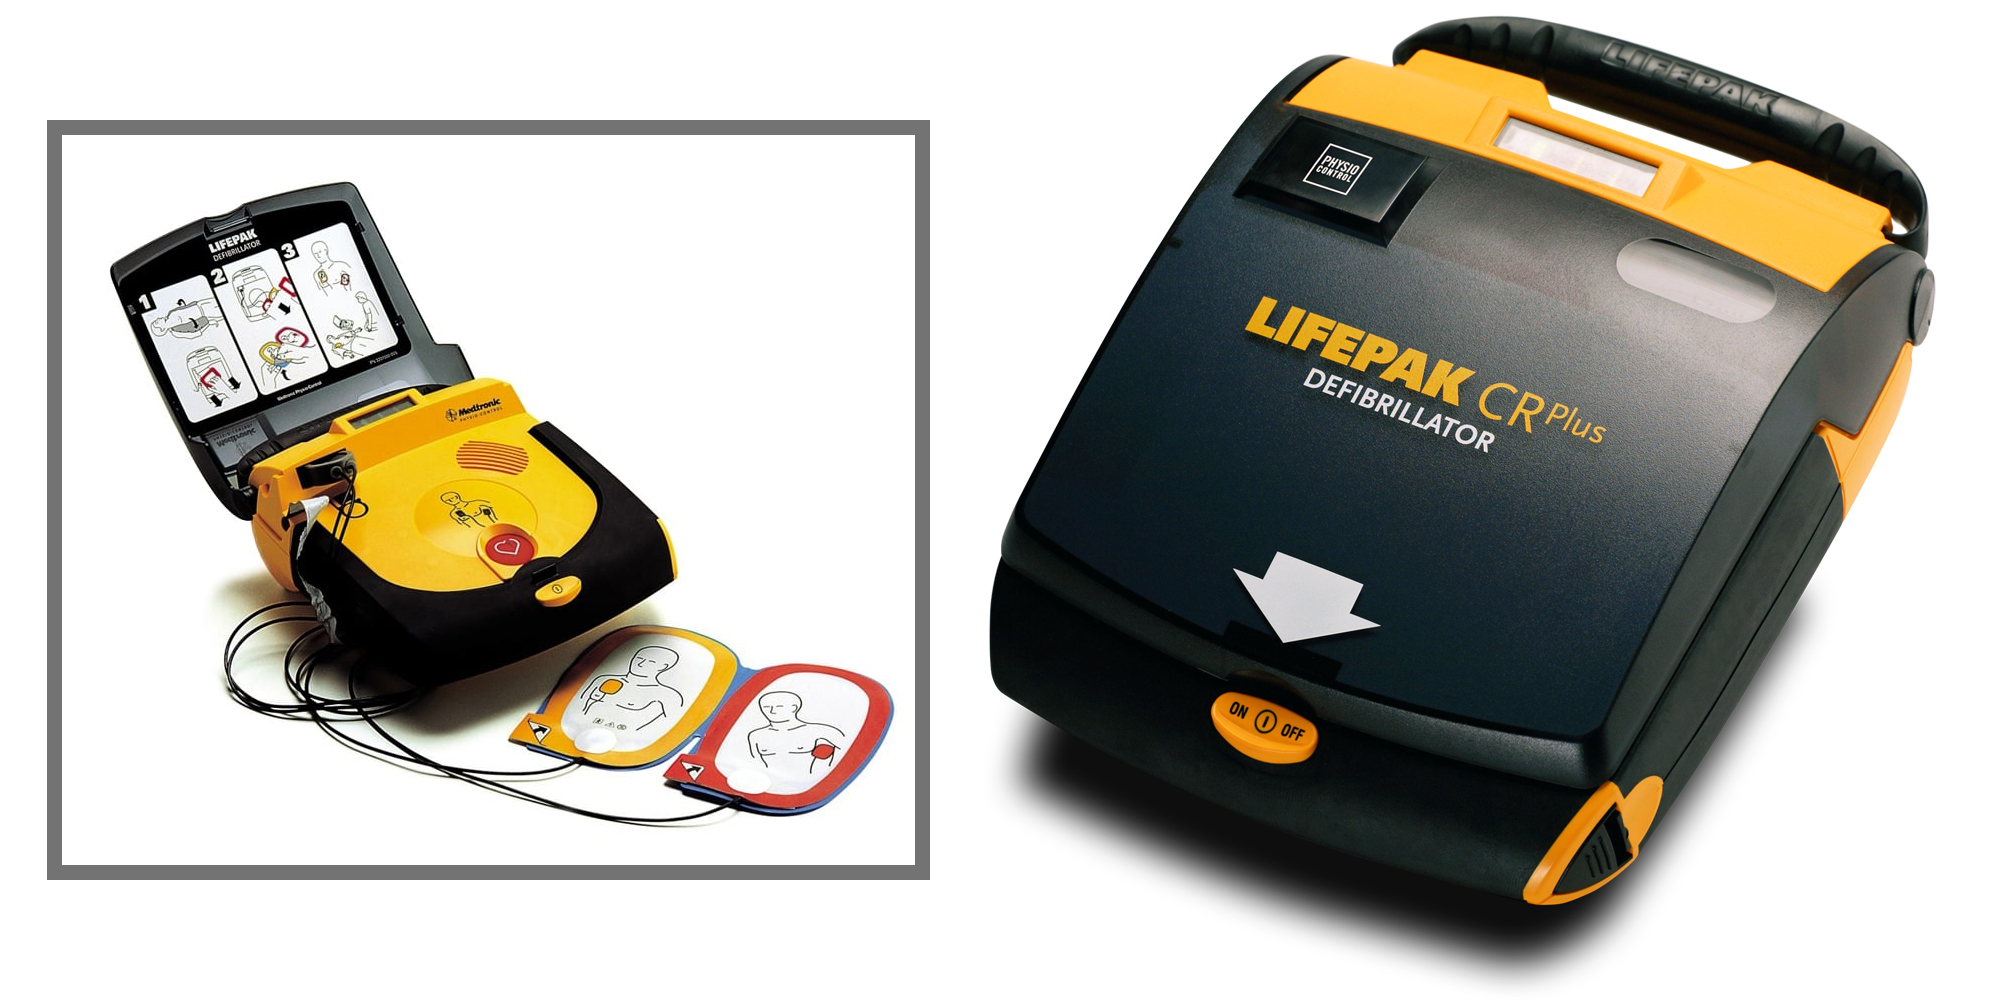 Workplace Defibrillator installed at HPP